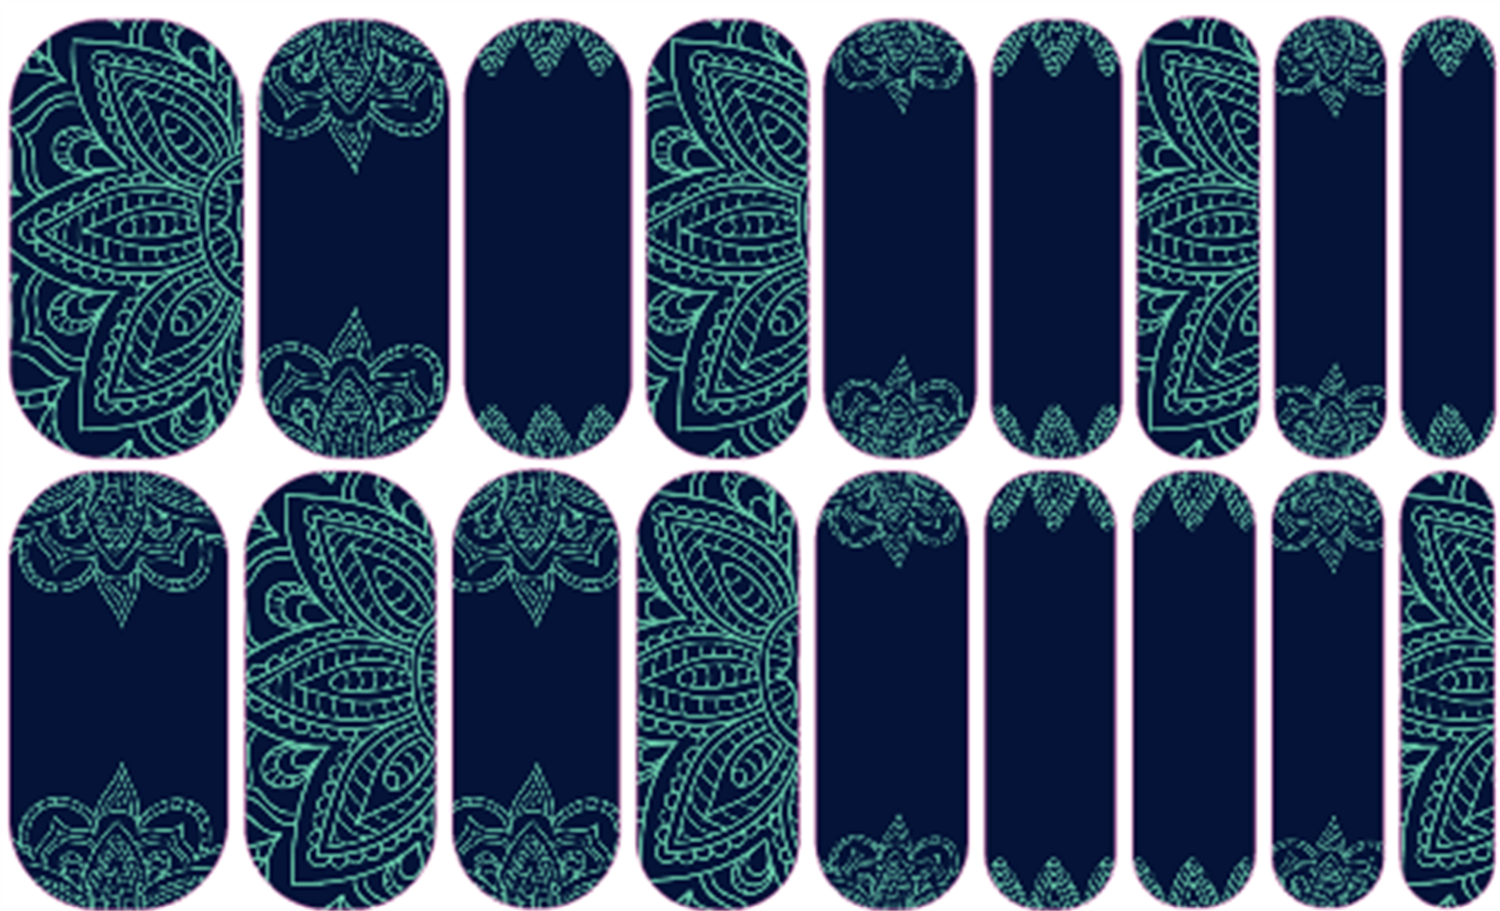 Henna Nights   Jamberry Mint green henna-inspired designs pop against cool navy in this perfect mix of classic and exotic. #jamberry #nailwraps #diymanicure #fun #beautiful #jamberrynails #joyfilledjamberry #sweet #mixedmani #girlygirl #fashion #teal #henna #exotic